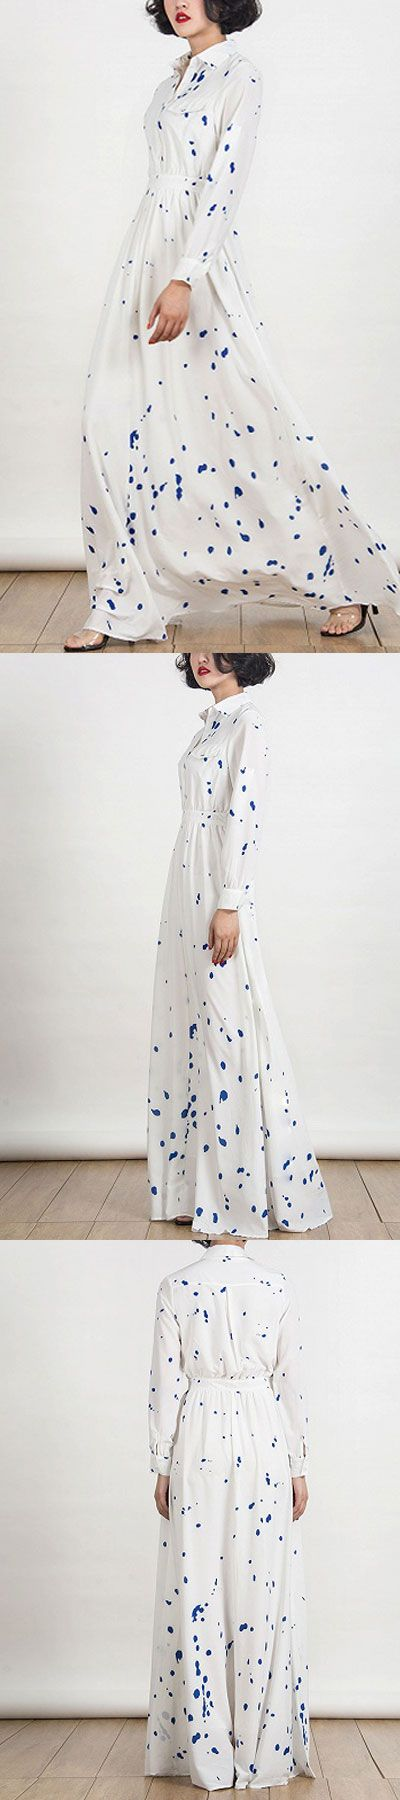 "pop white maxi dress still in style - spring dresses on sale today! 60% off in choies.com   exclusive code here ""pin10off""  to save 10% more for order value over $45."